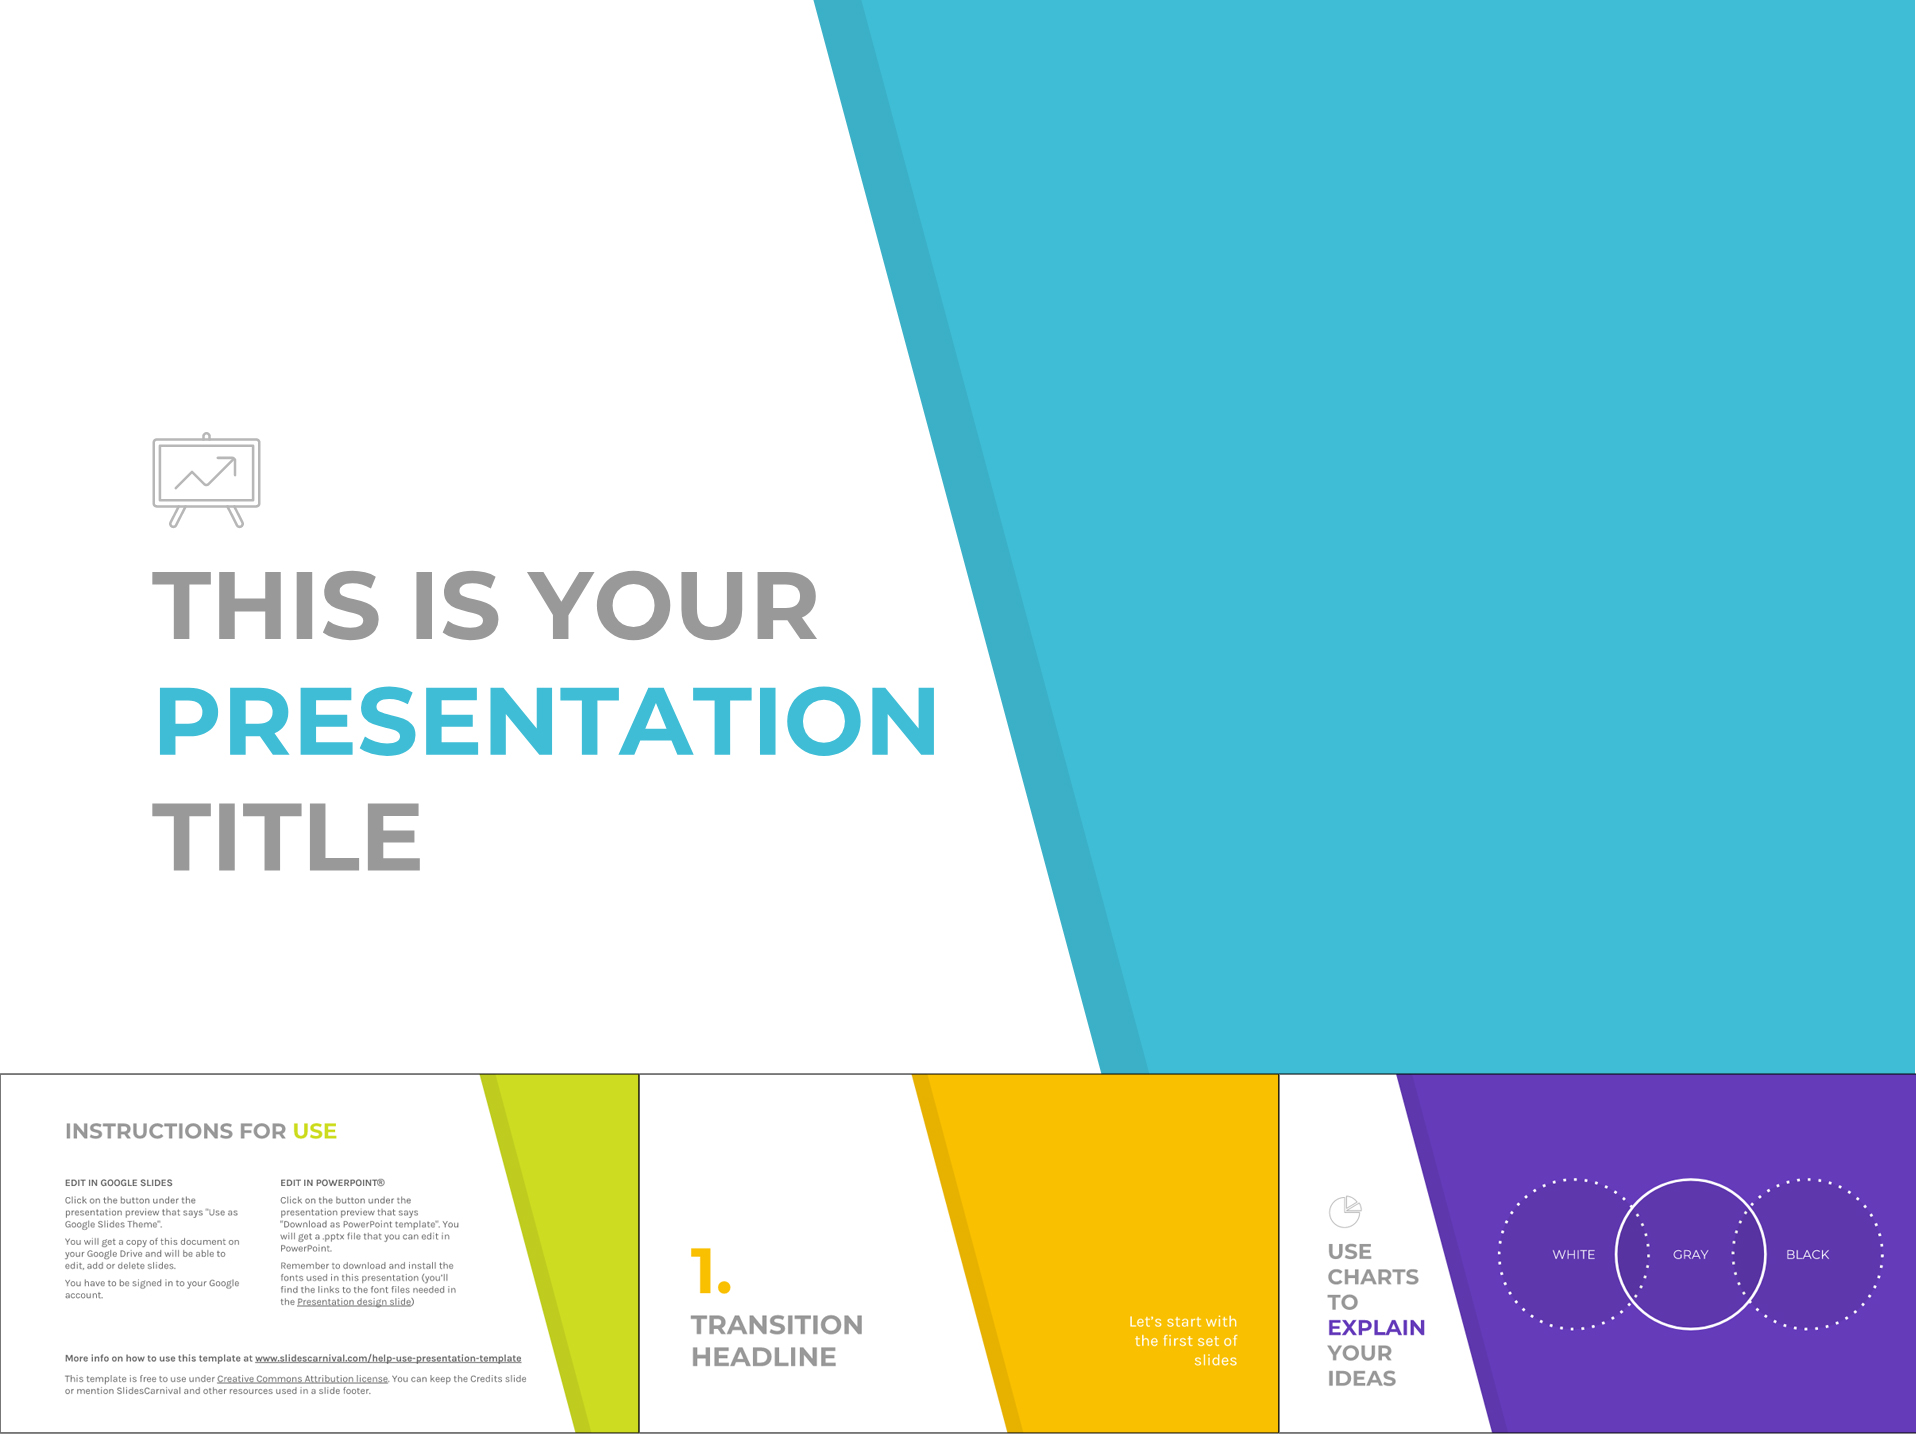 Free Google Slides Templates For Your Next Presentation - Google design templates